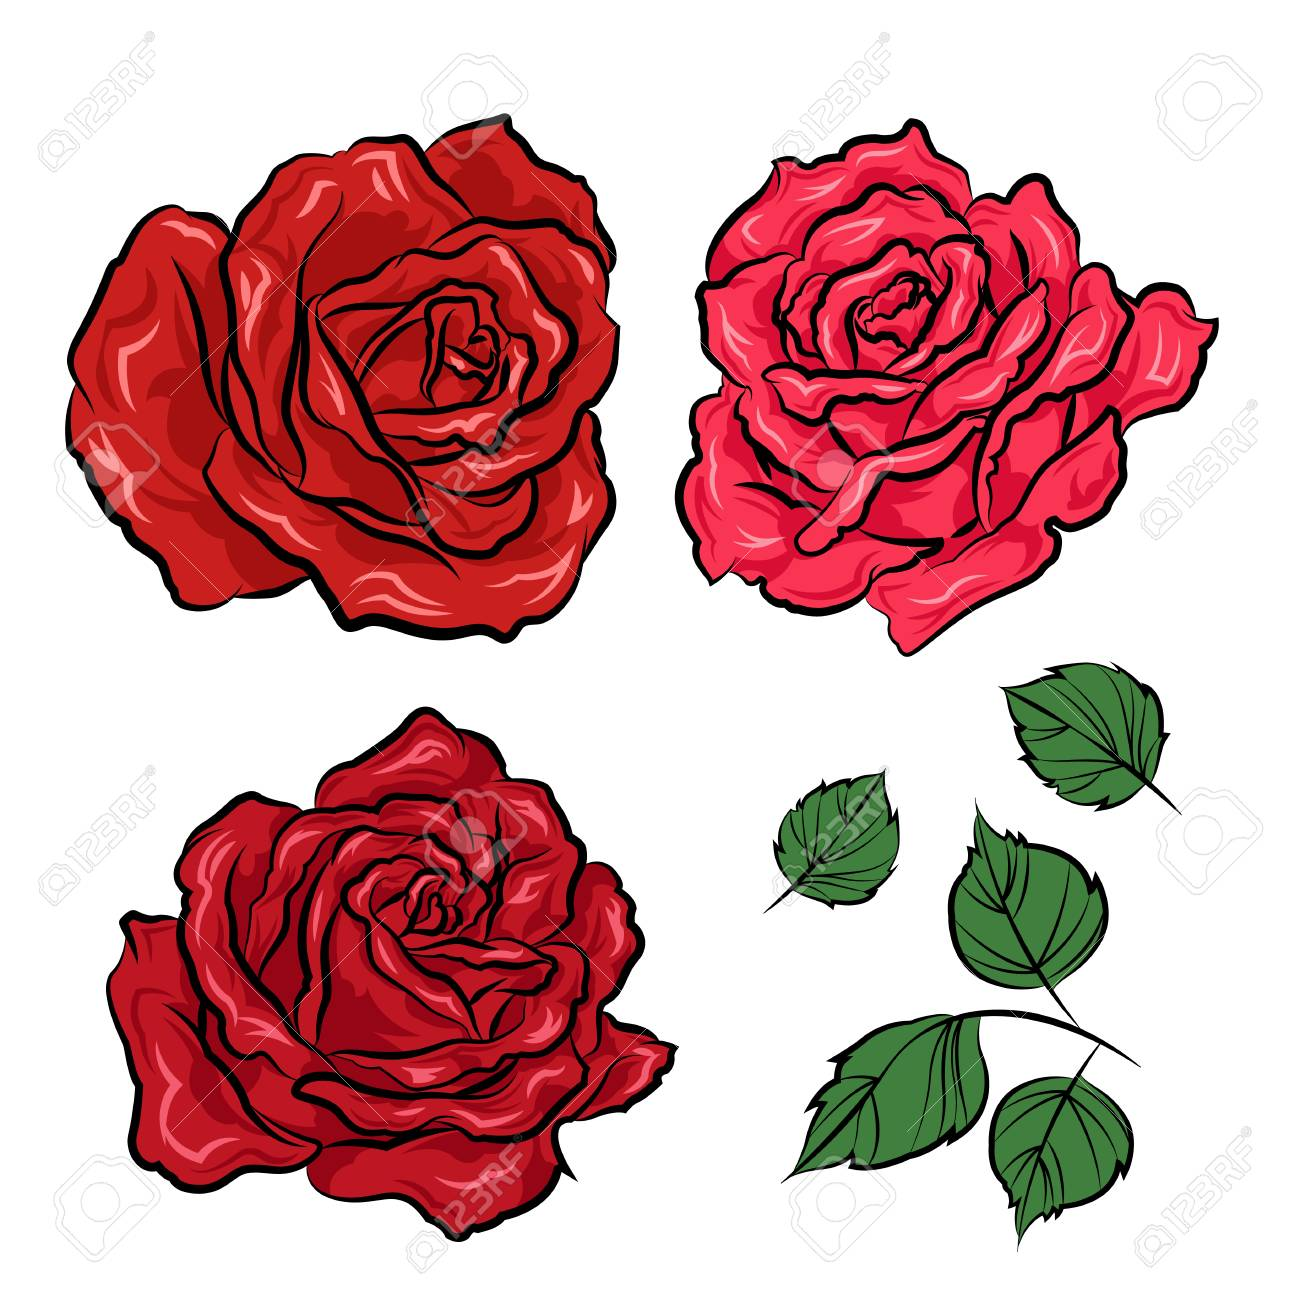 hand drawn roses and leaves isolated on white background vector